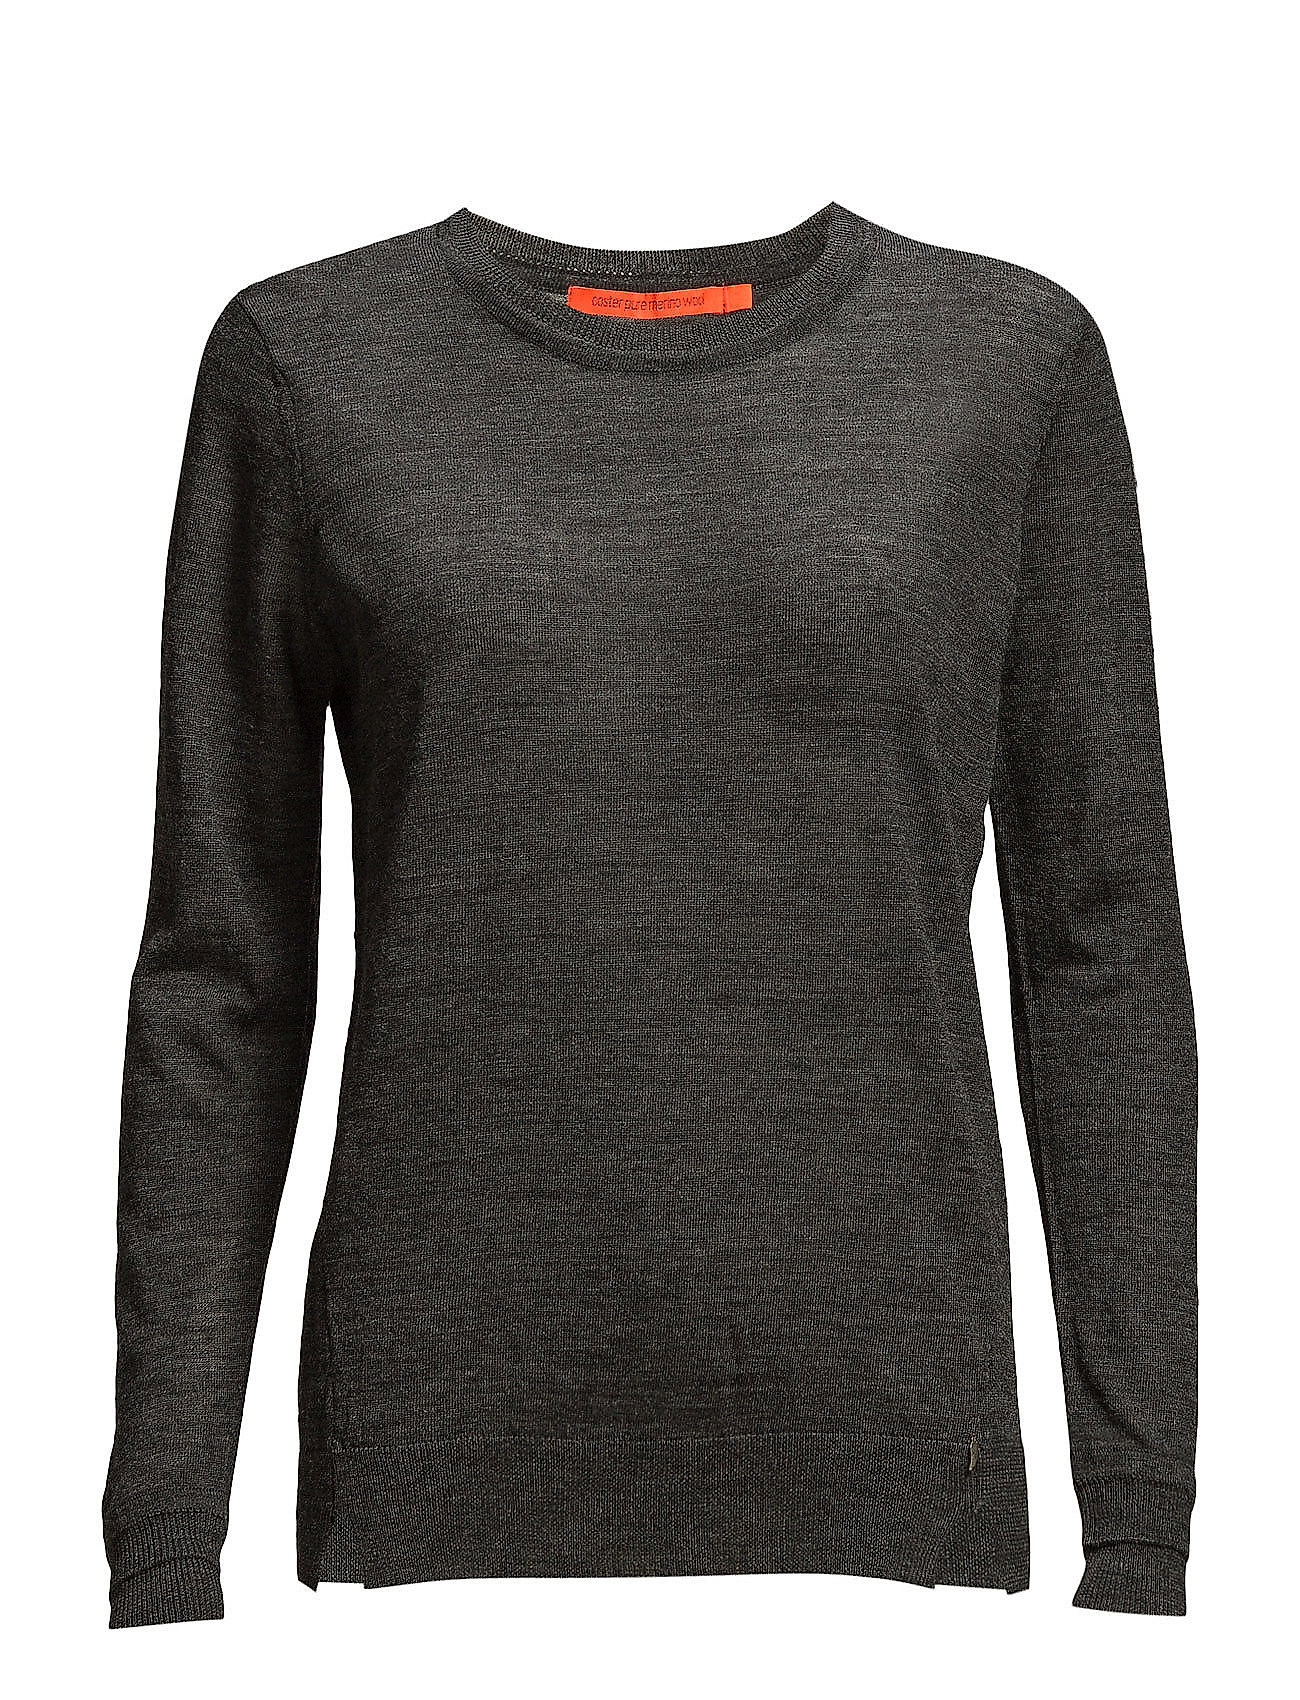 Coster Copenhagen Round neck knit top merino (Basic) - DARK GREY MELANGE